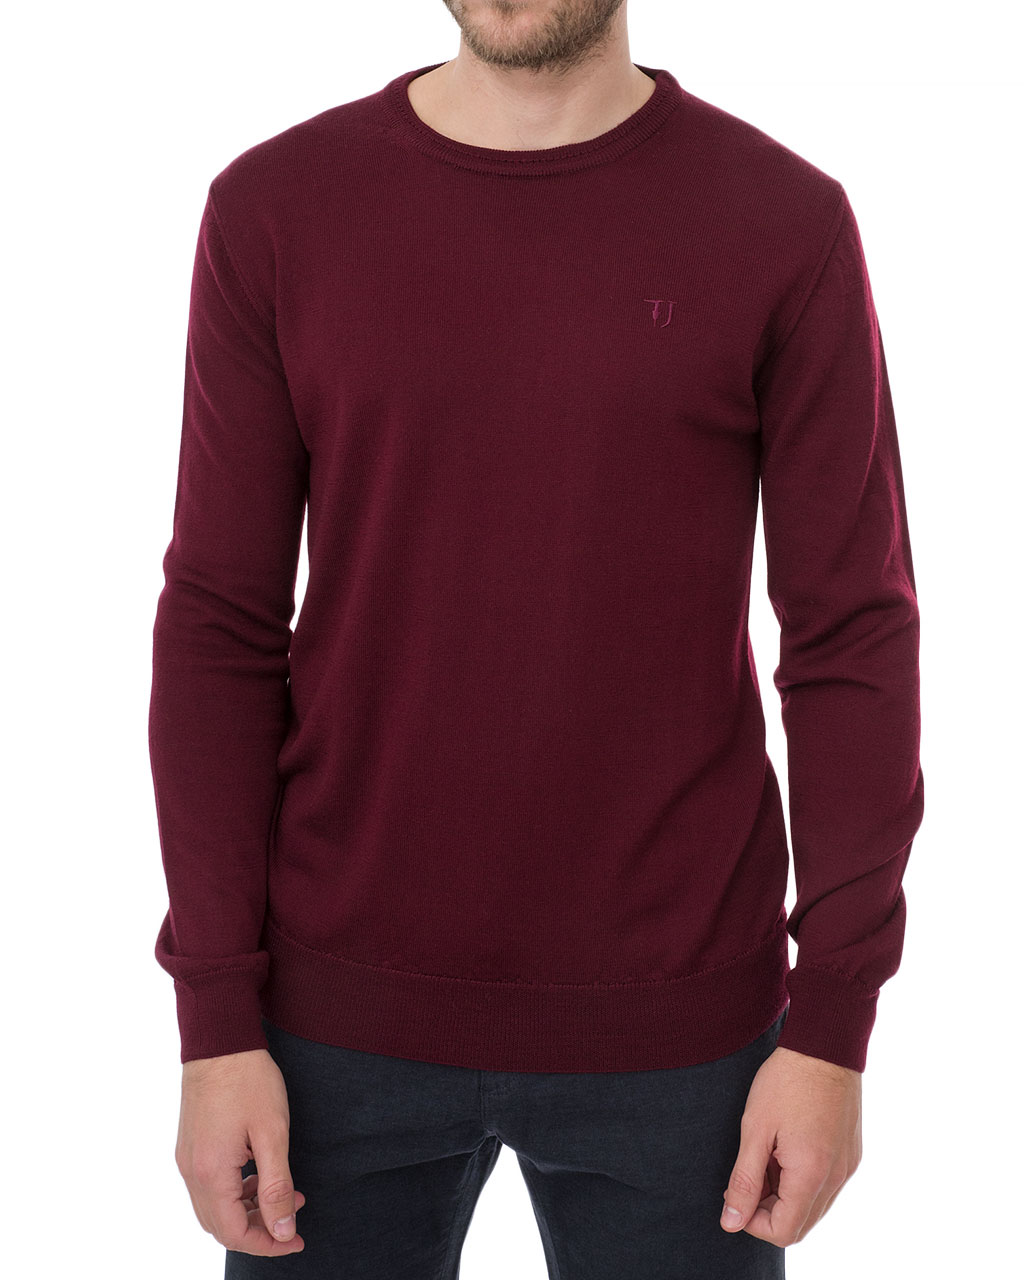 Men's jumper 52M00257-OF000422-R145/19-20 (1)